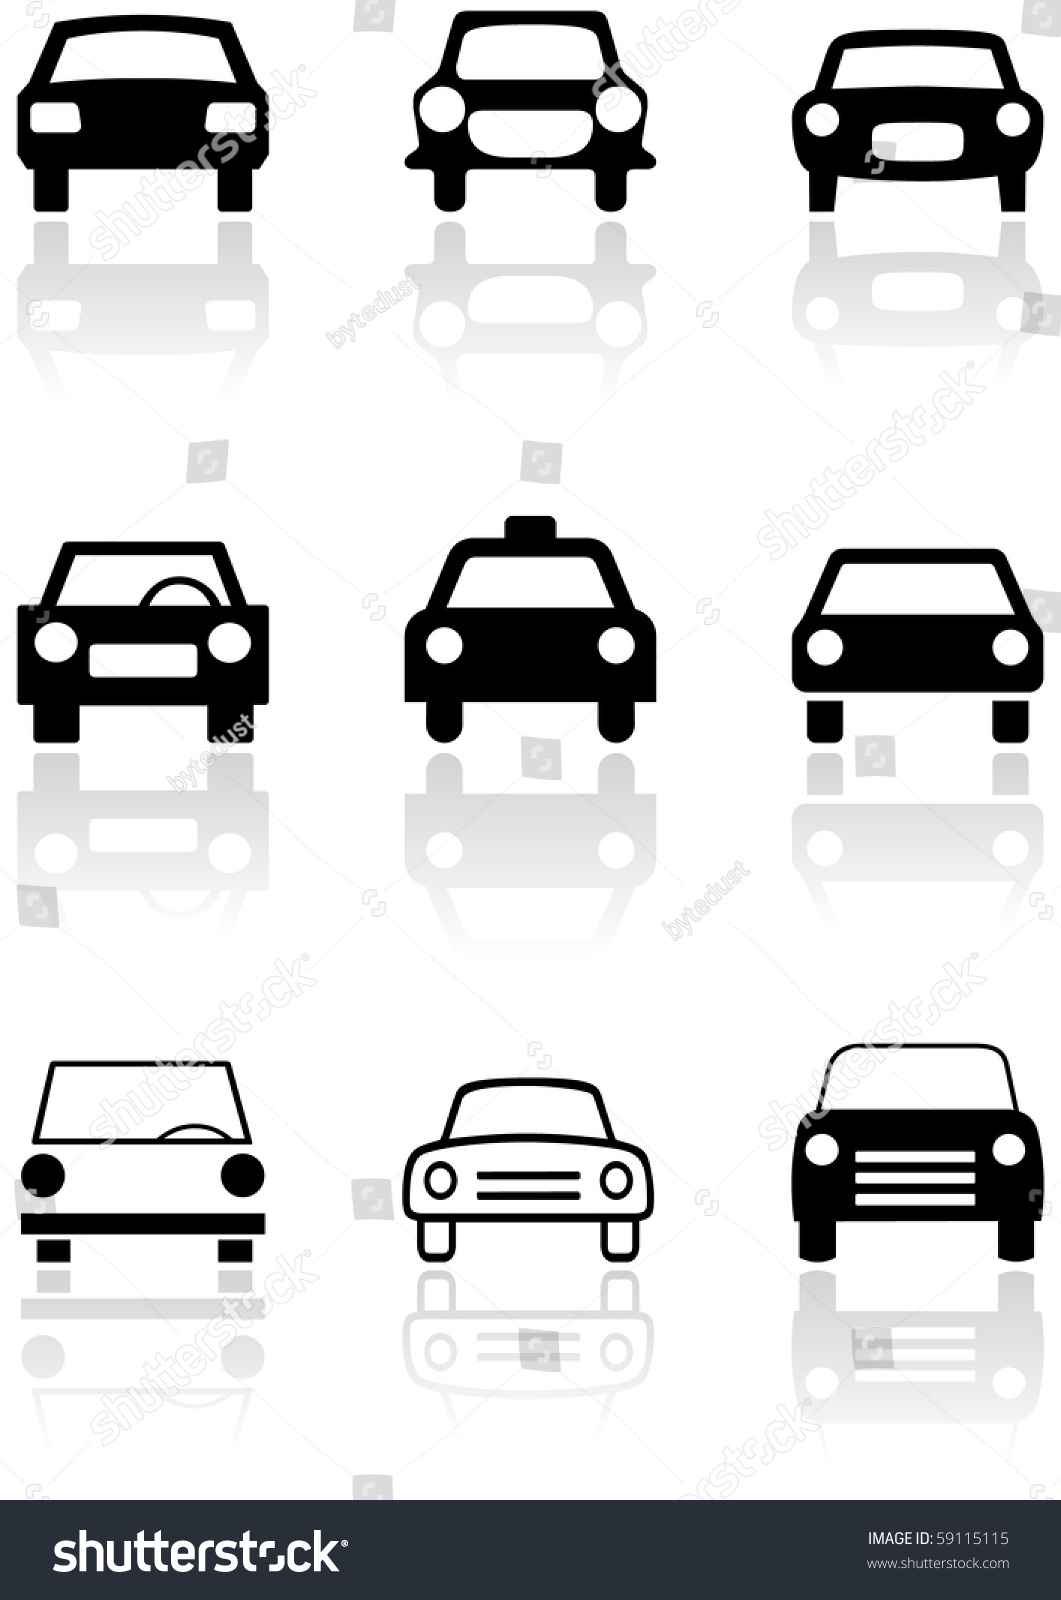 All car symbols pictures all pictures top all car symbols pictures biocorpaavc